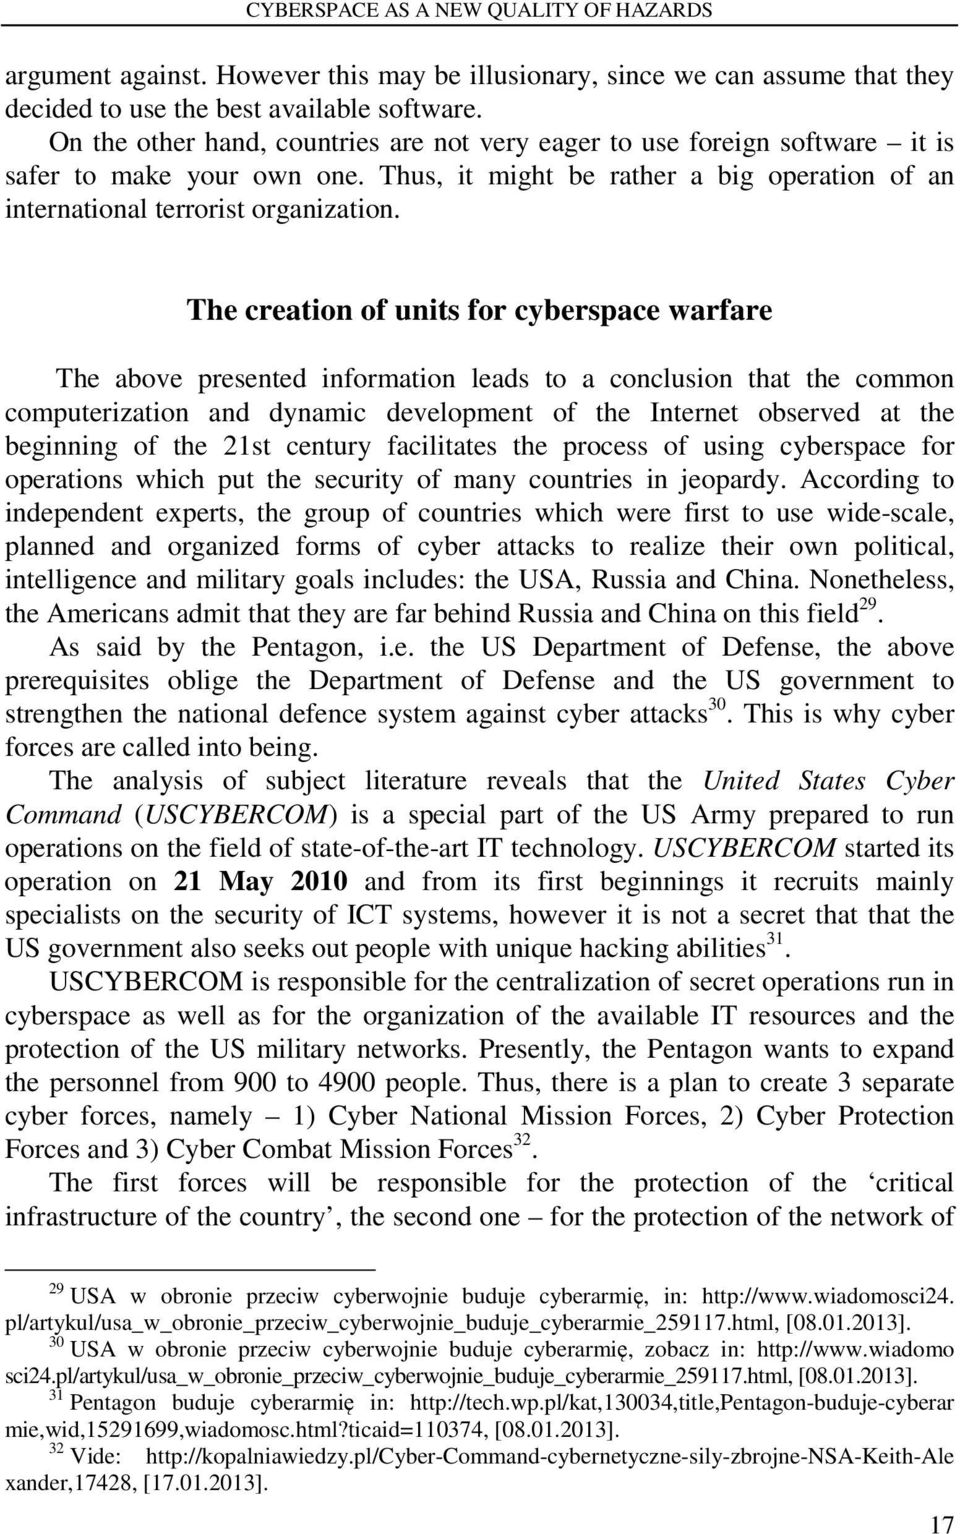 The creation of units for cyberspace warfare The above presented information leads to a conclusion that the common computerization and dynamic development of the Internet observed at the beginning of